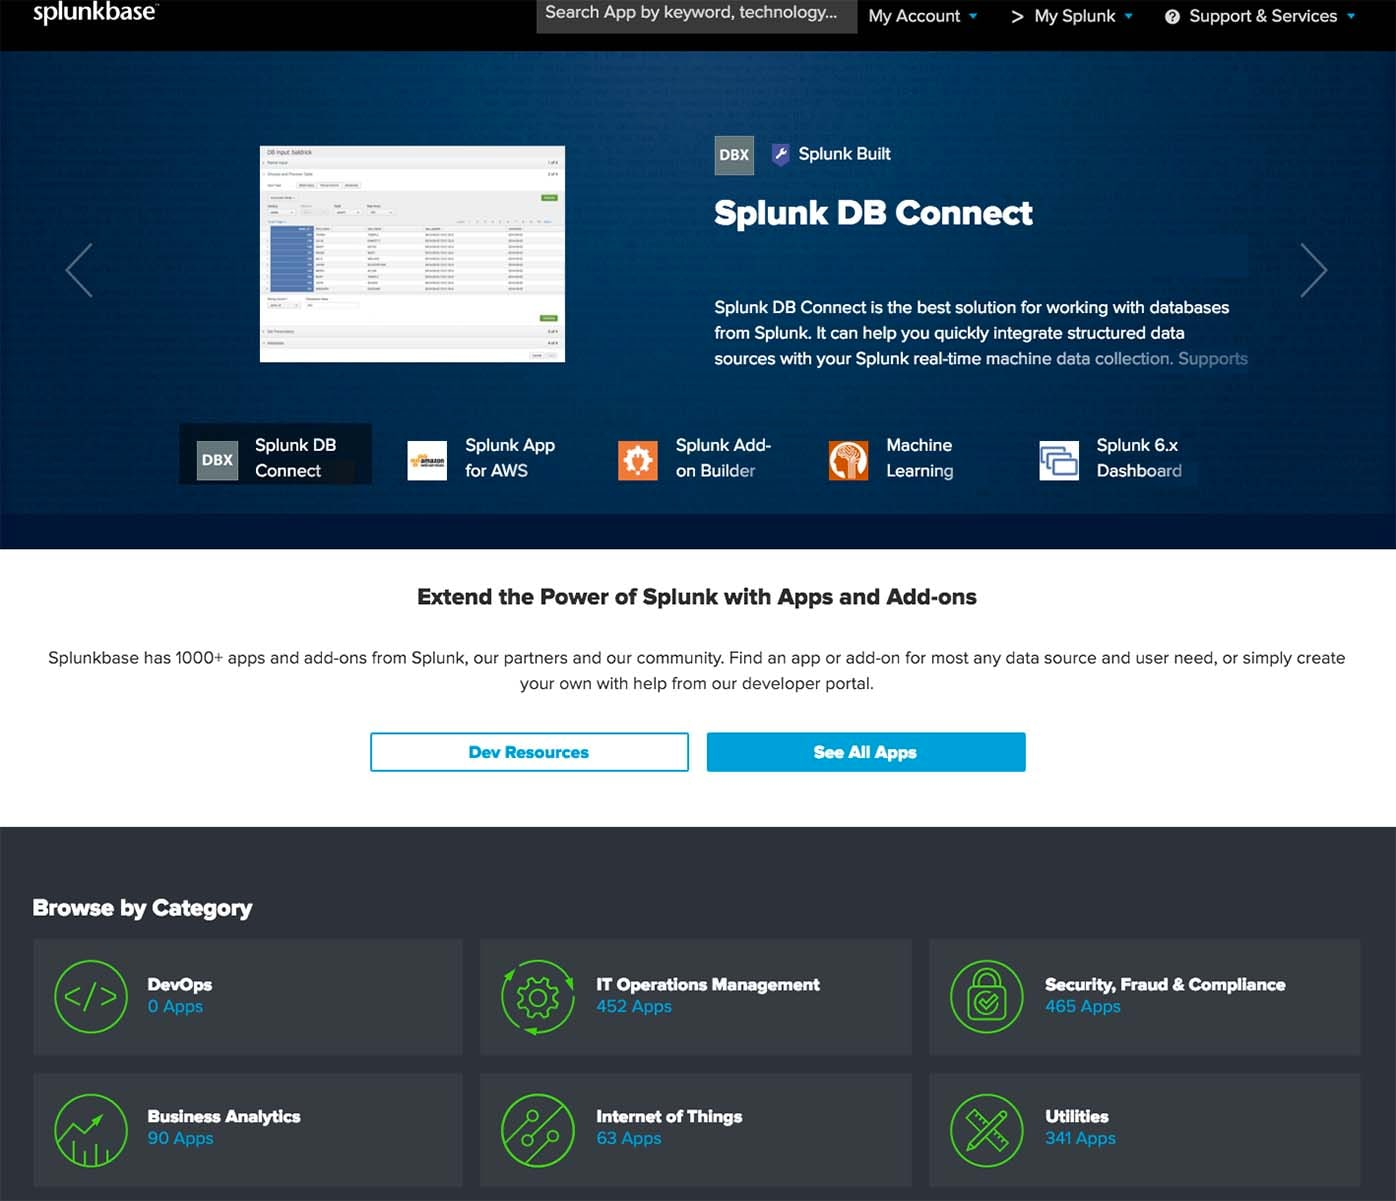 Splunkbase homepage categories